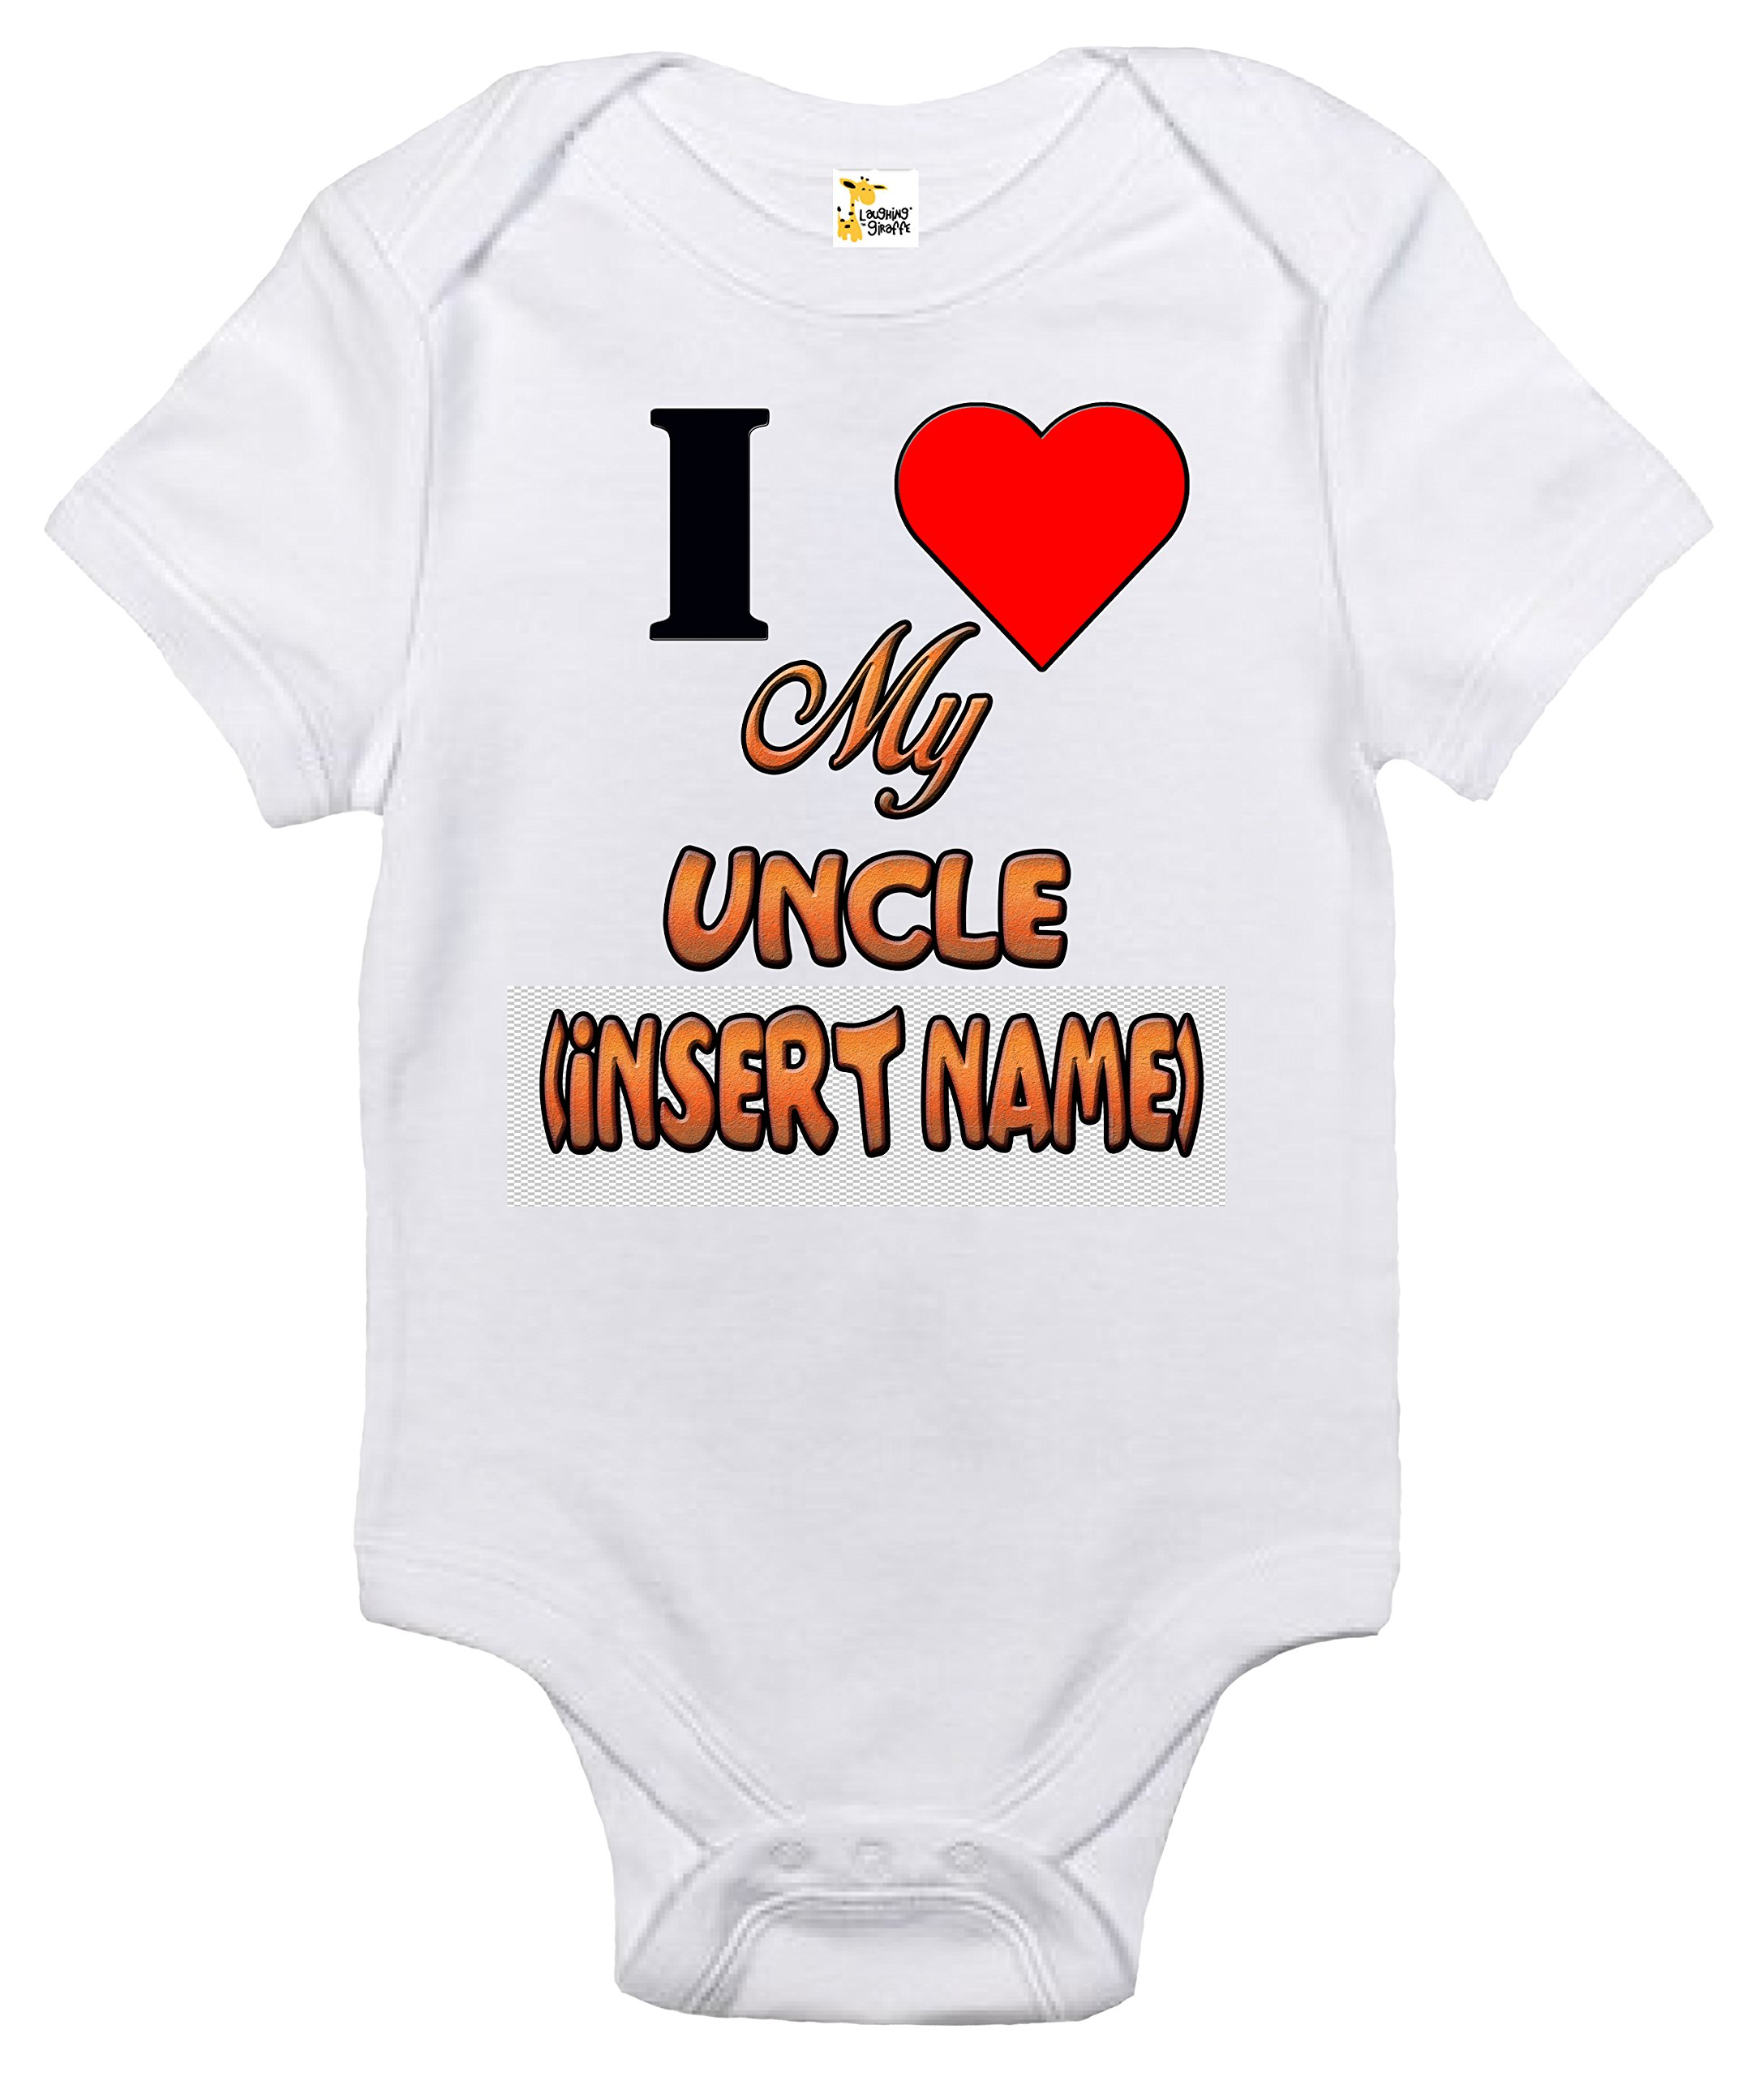 Custom Personalized Baby Bodysuit – I Love My Uncle One-piece Baby Clothes